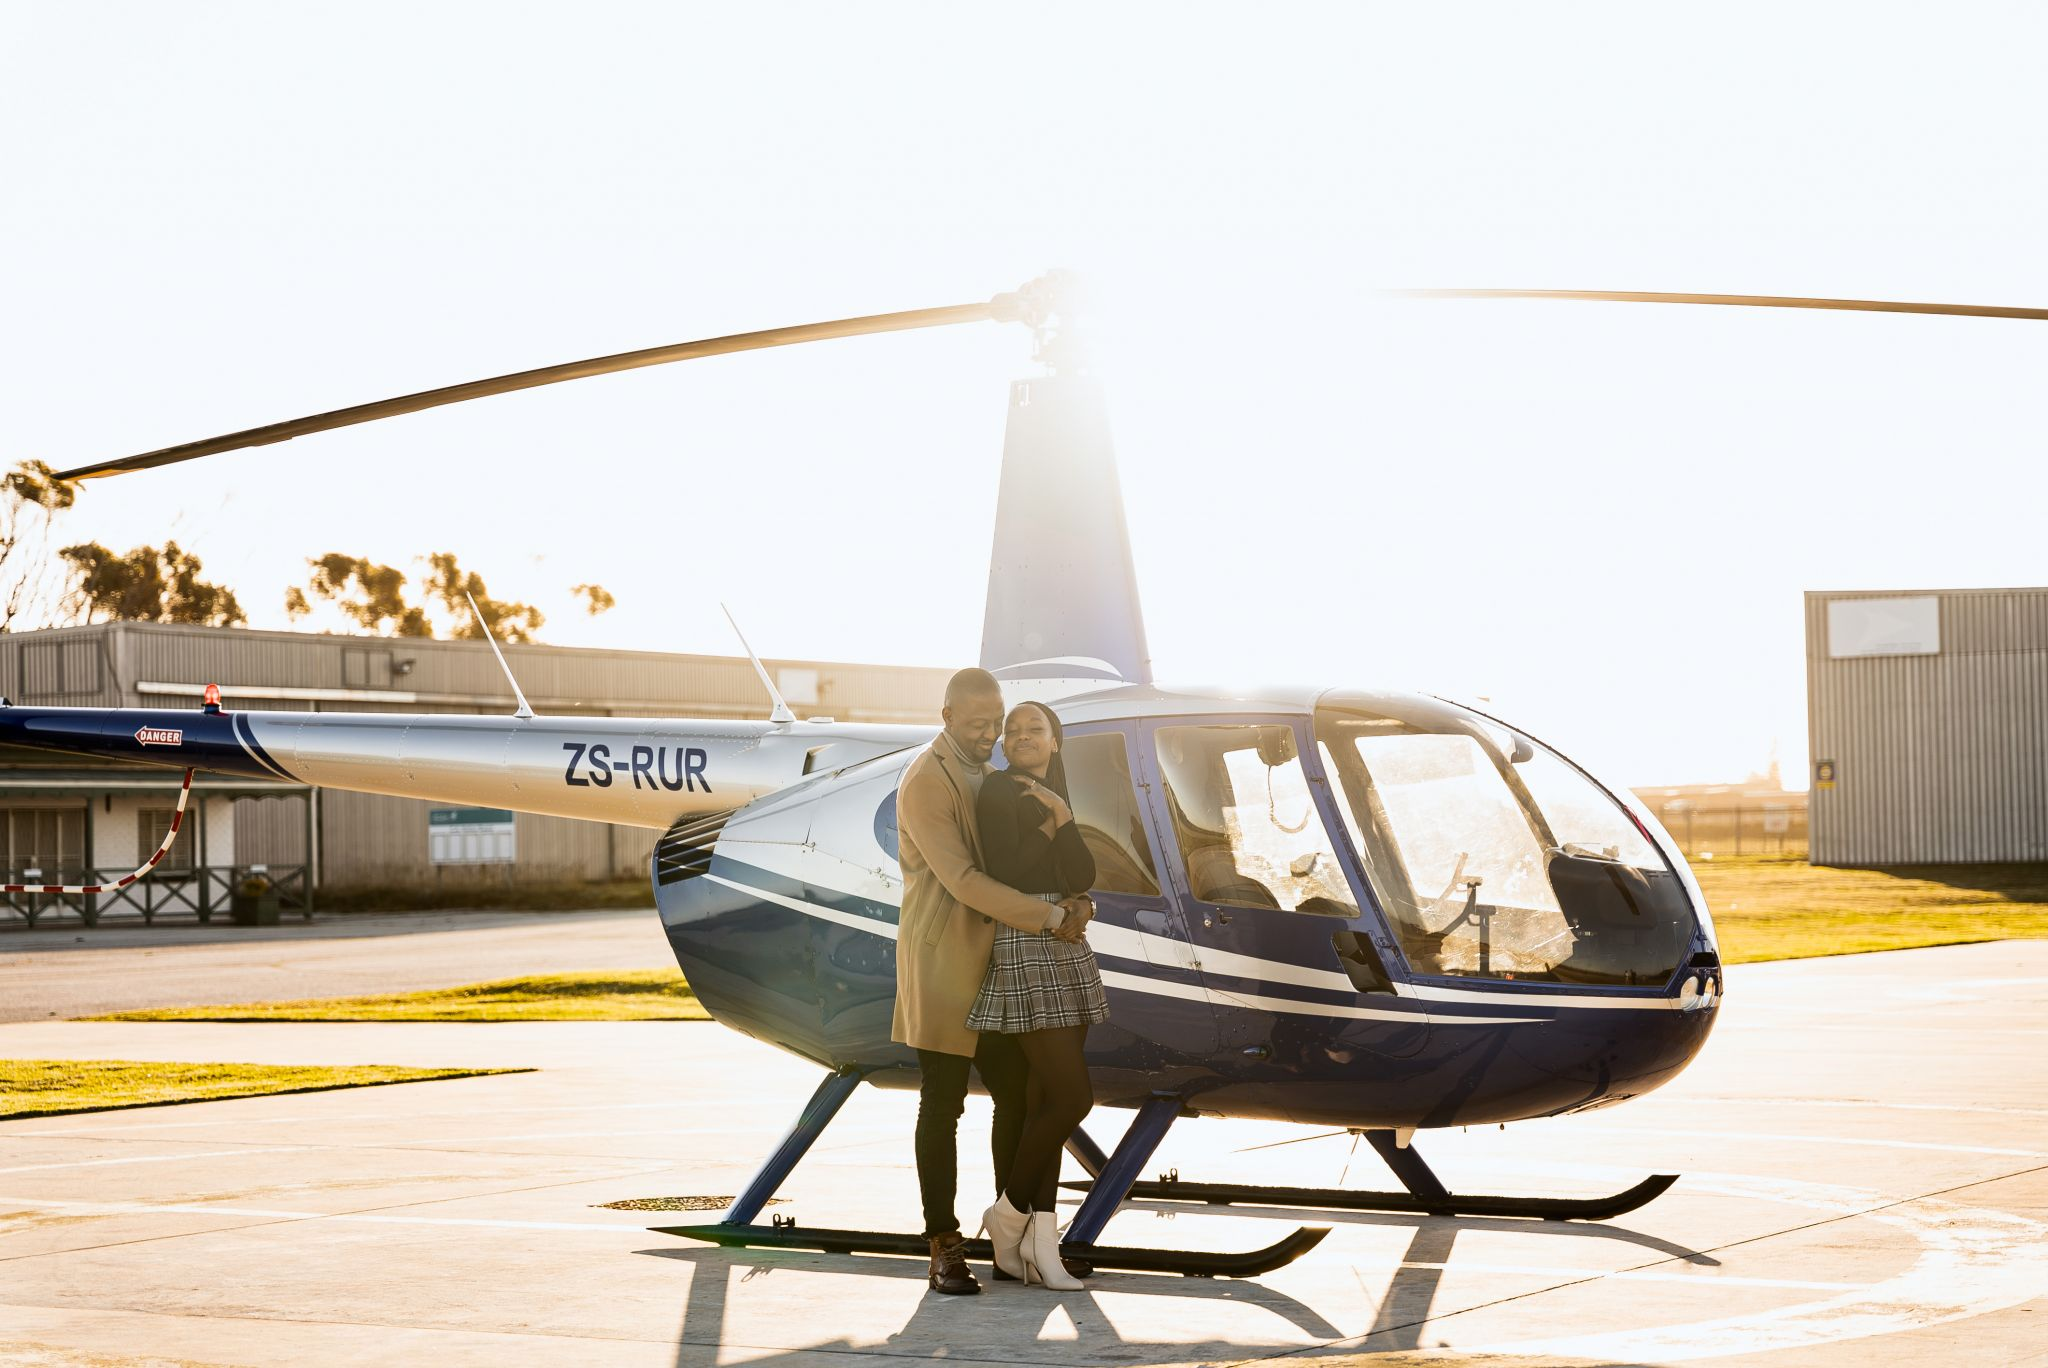 Romantic helicopter proposal